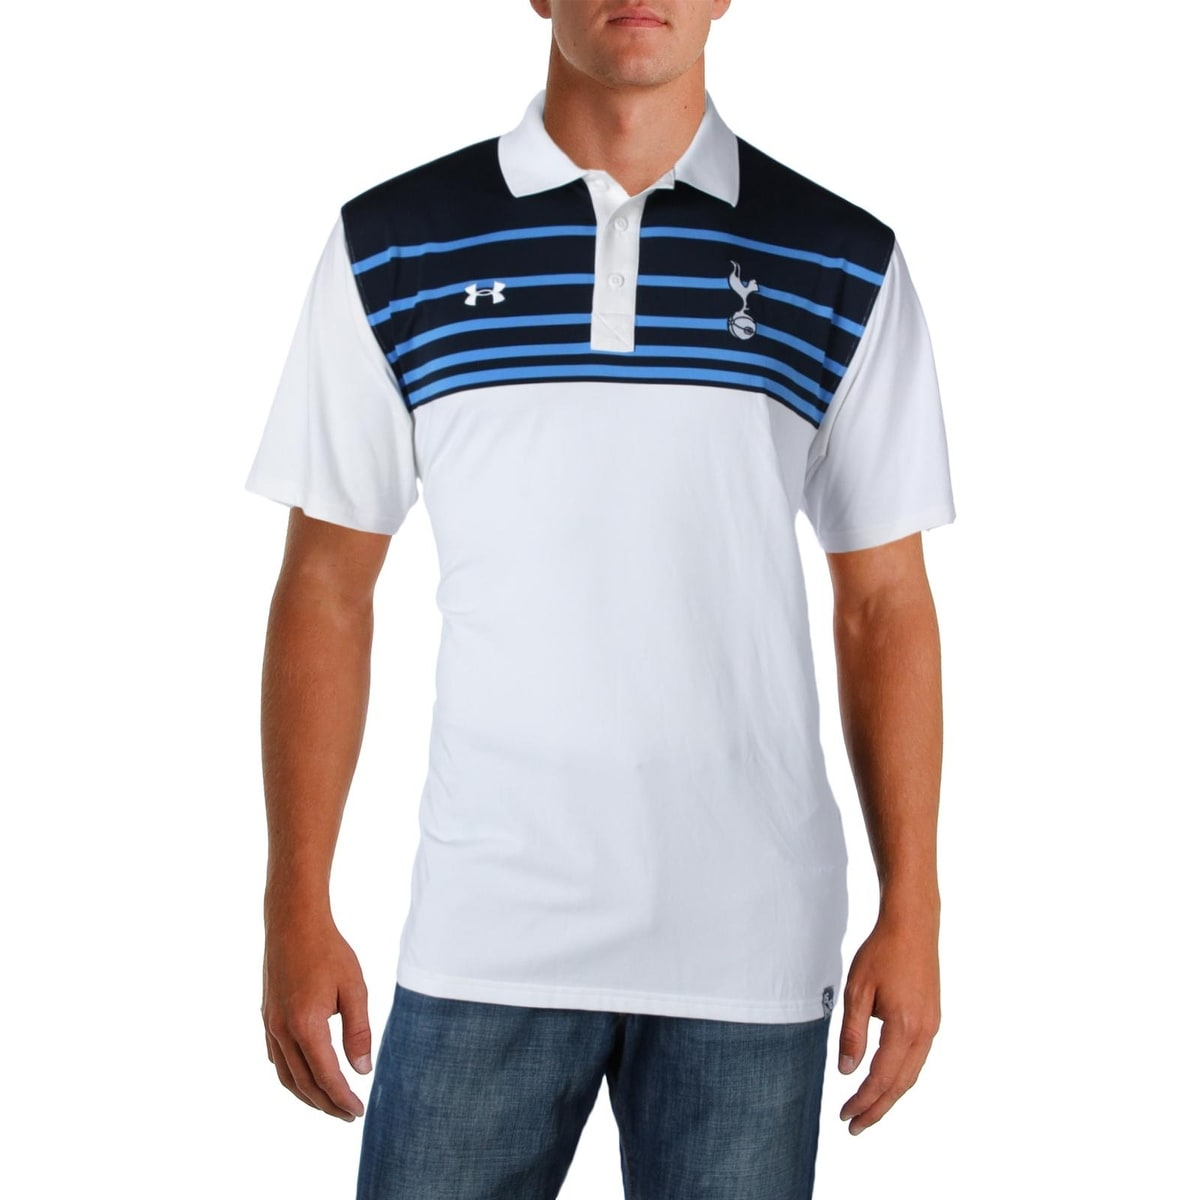 Under Armour Mens Heat Gear Golf Loose Fit Polo Shirts